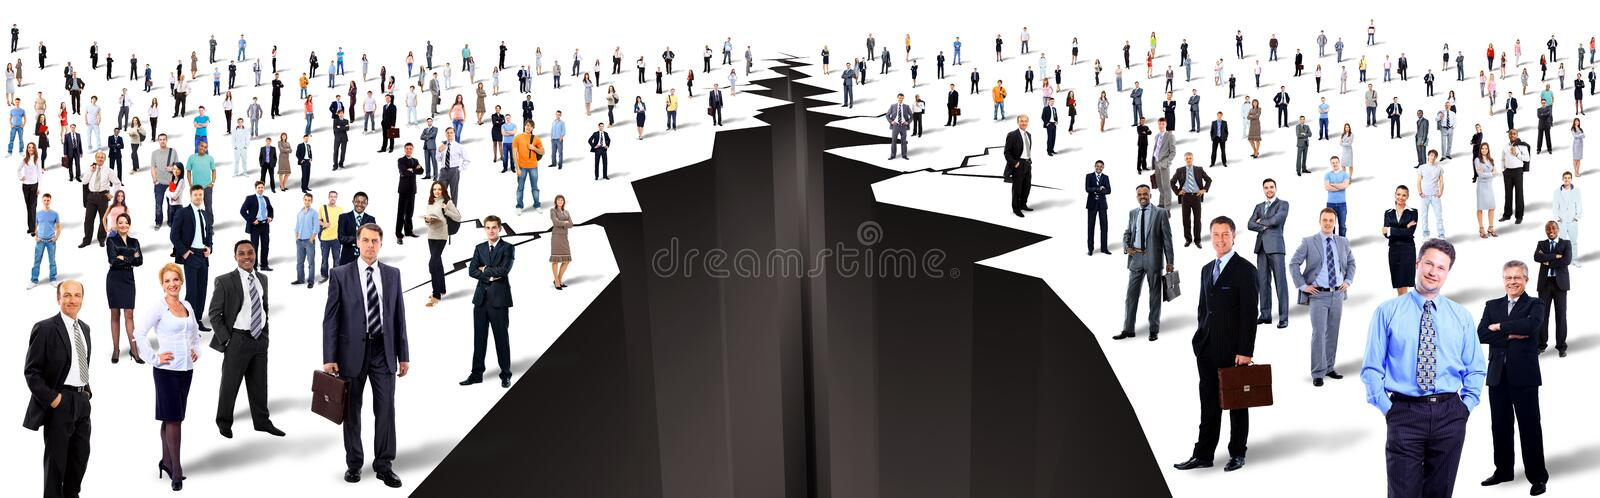 Between two large groups of people royalty free stock images